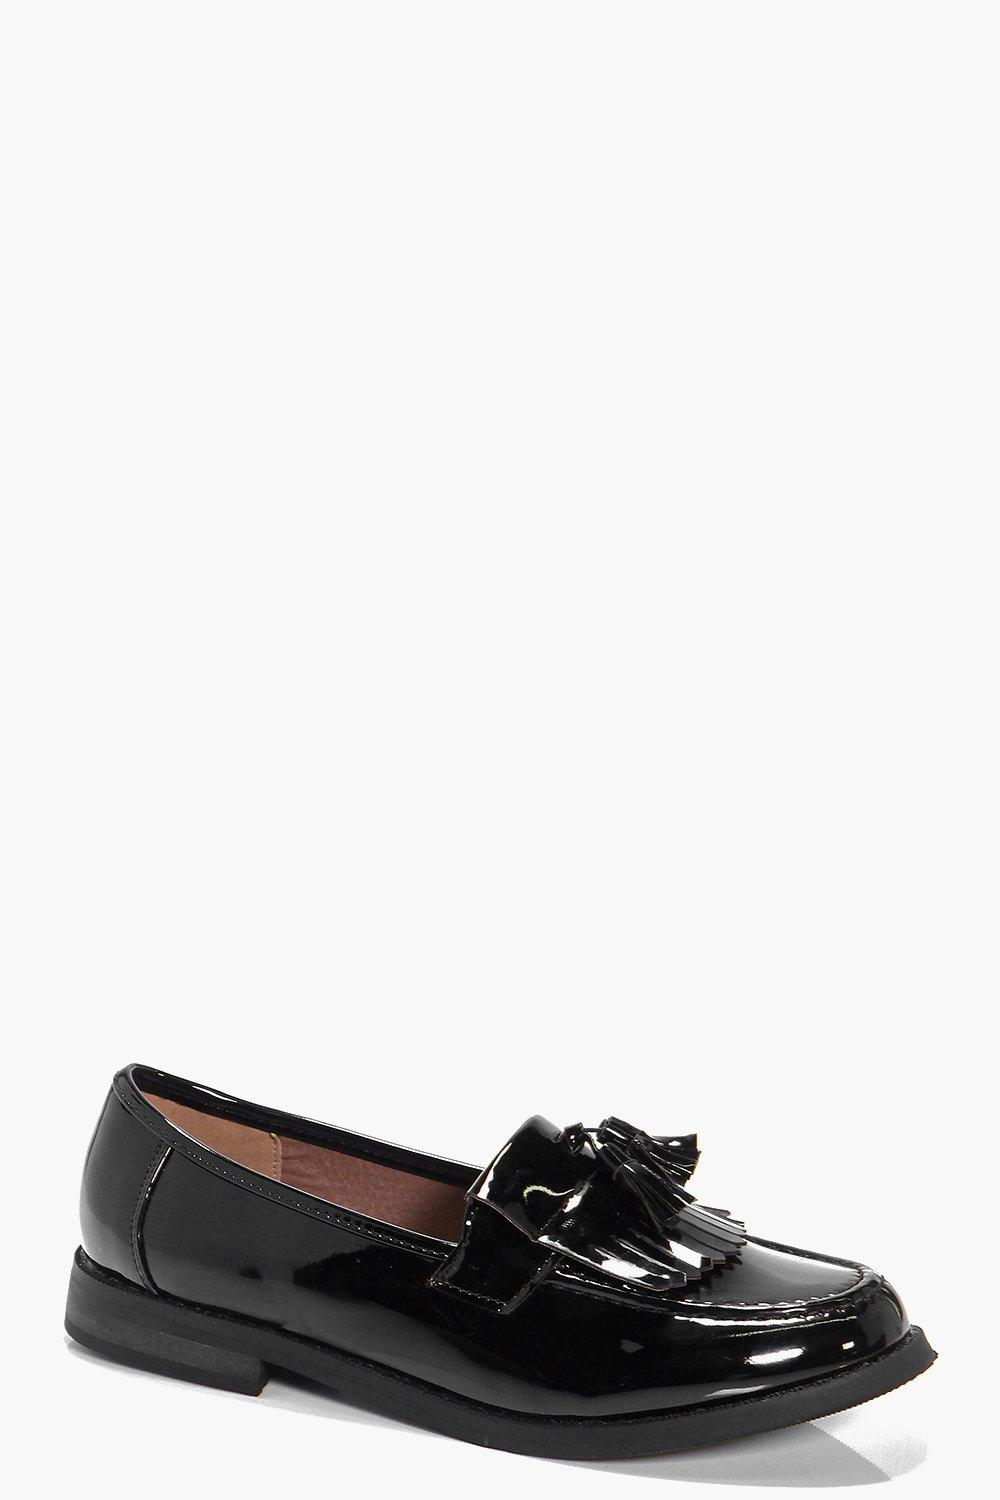 Fringe Trim Loafer black